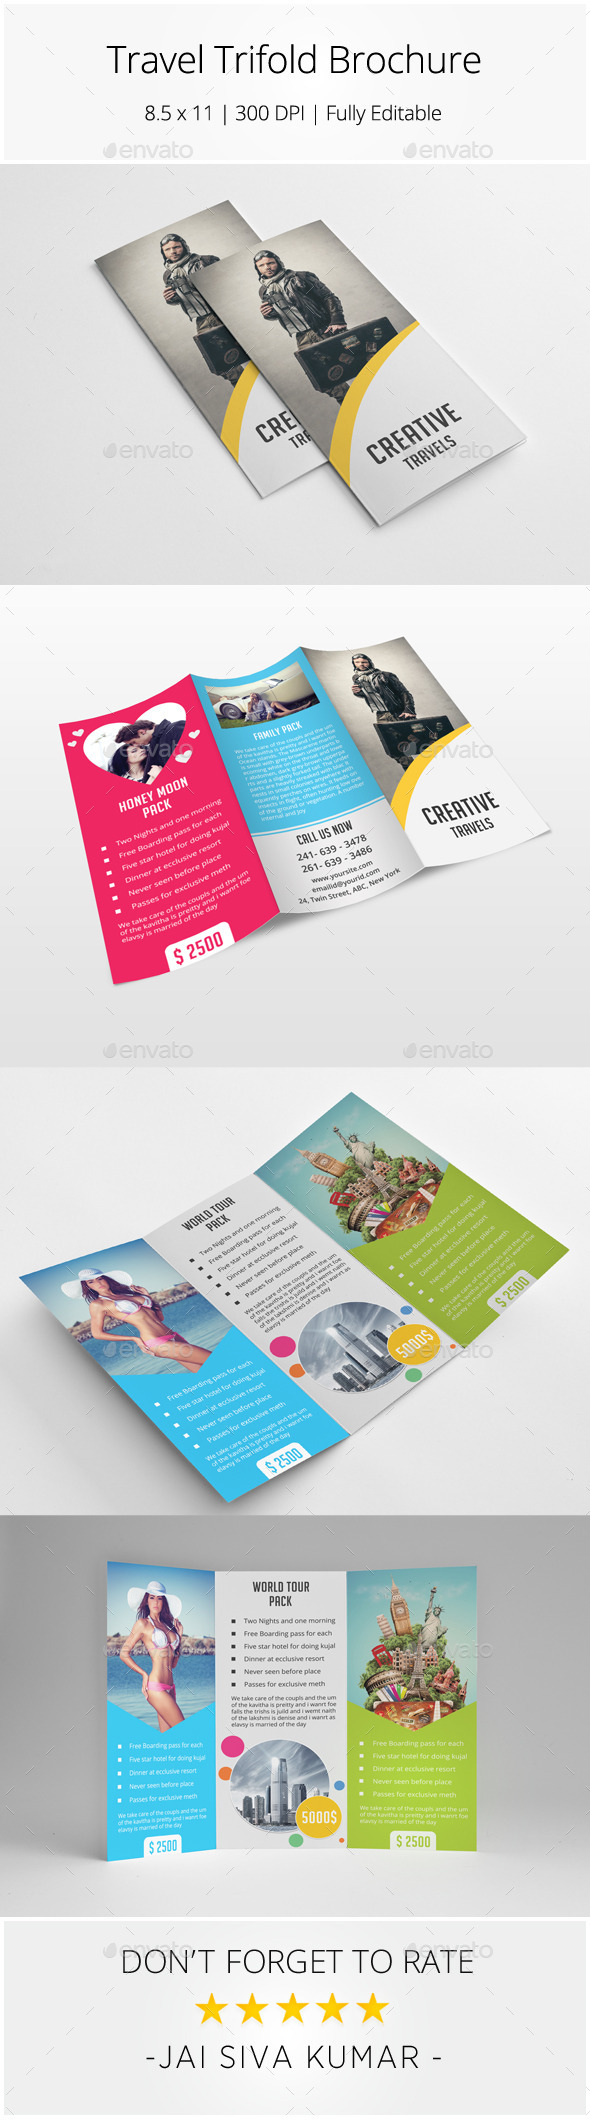 GraphicRiver Travel Trifold Brochure 9115113